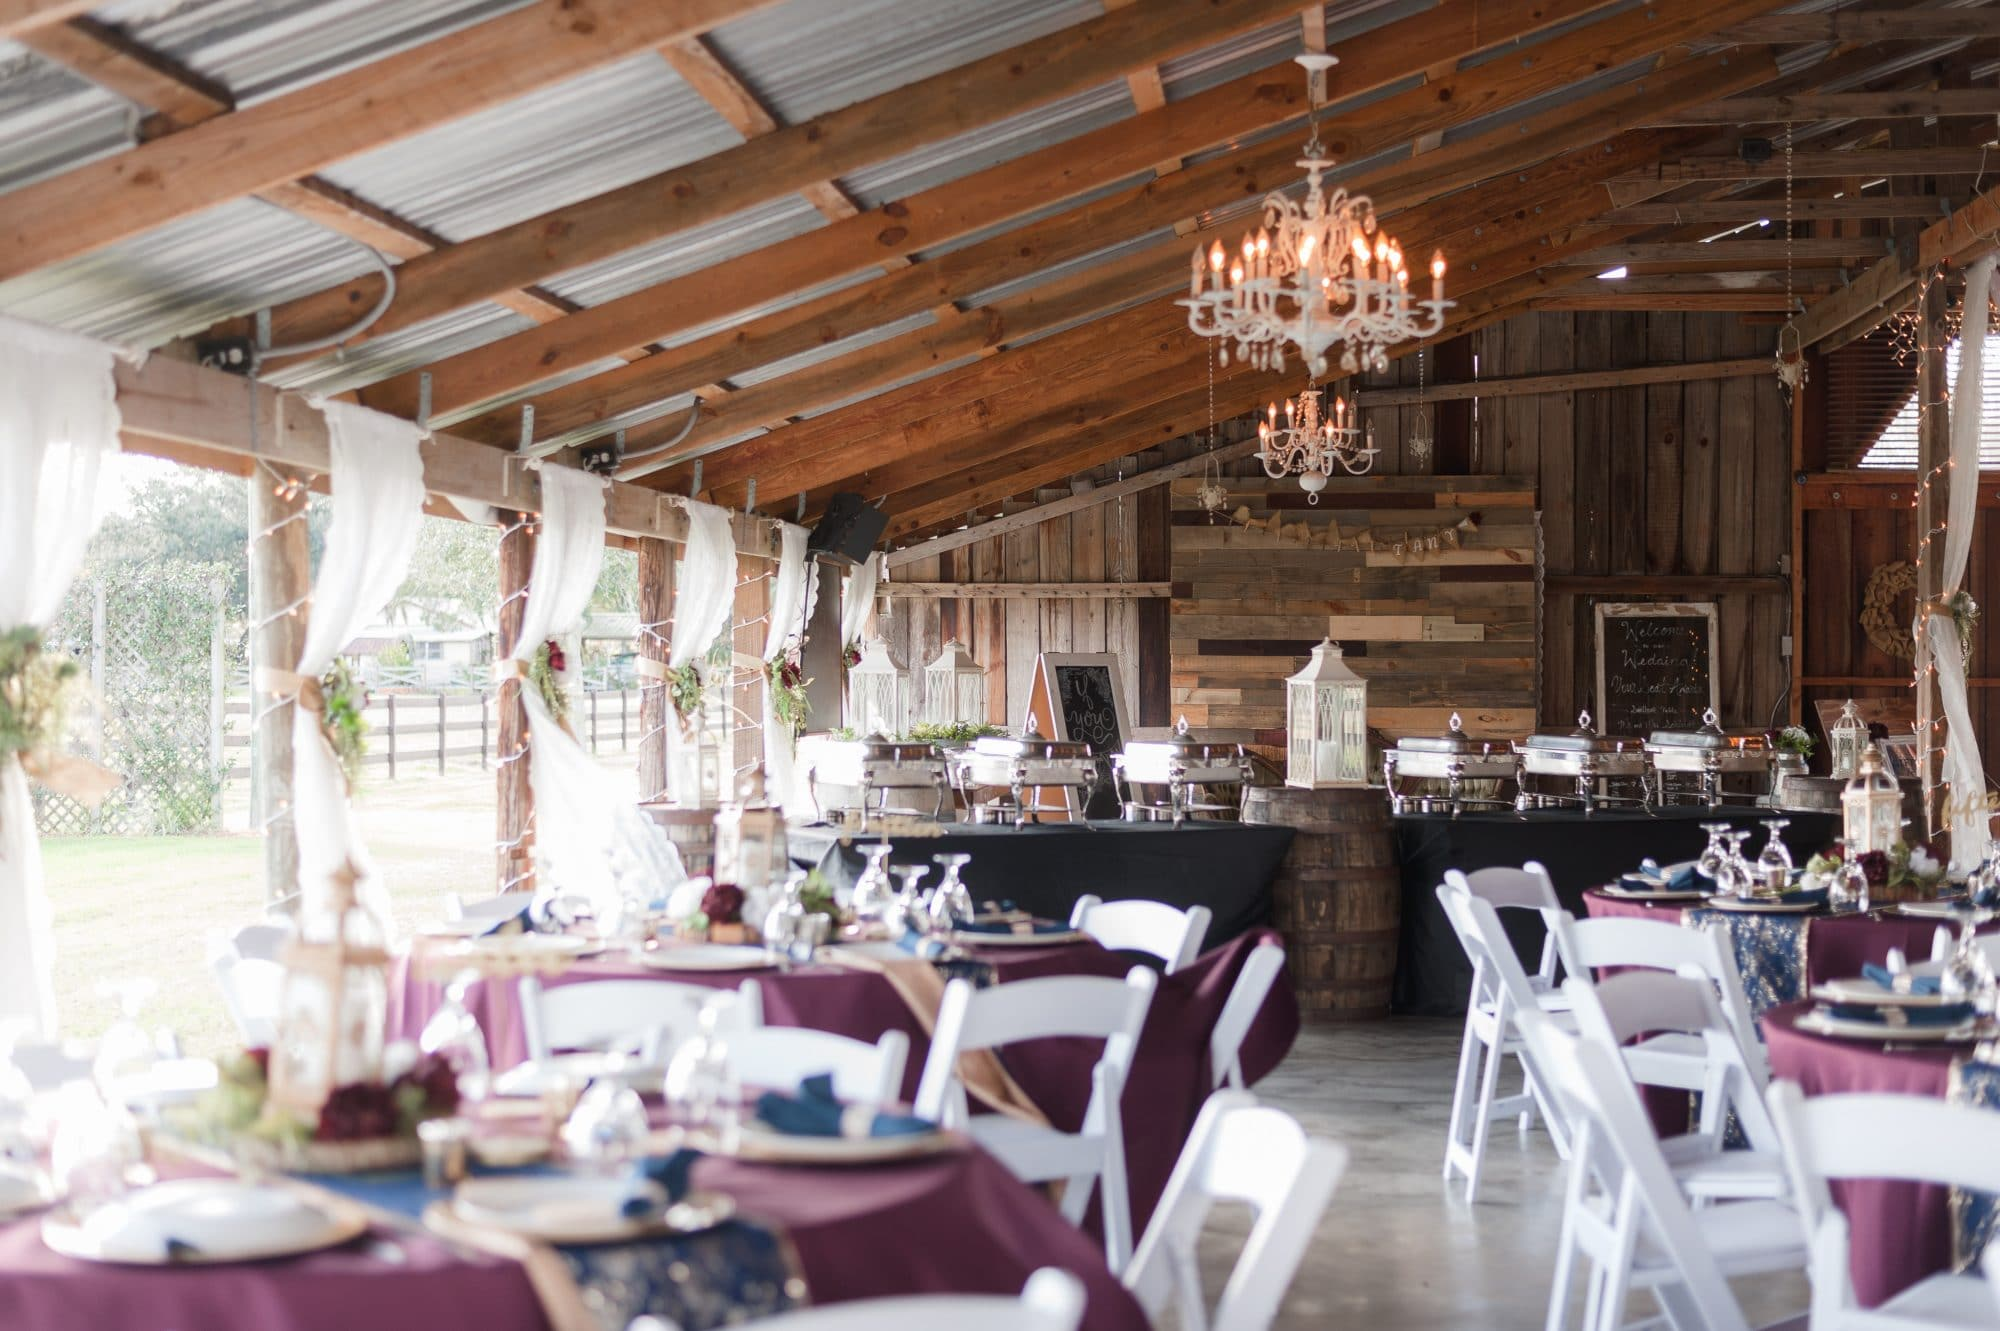 Rustic barn with touches of glam for a beautiful wedding reception.